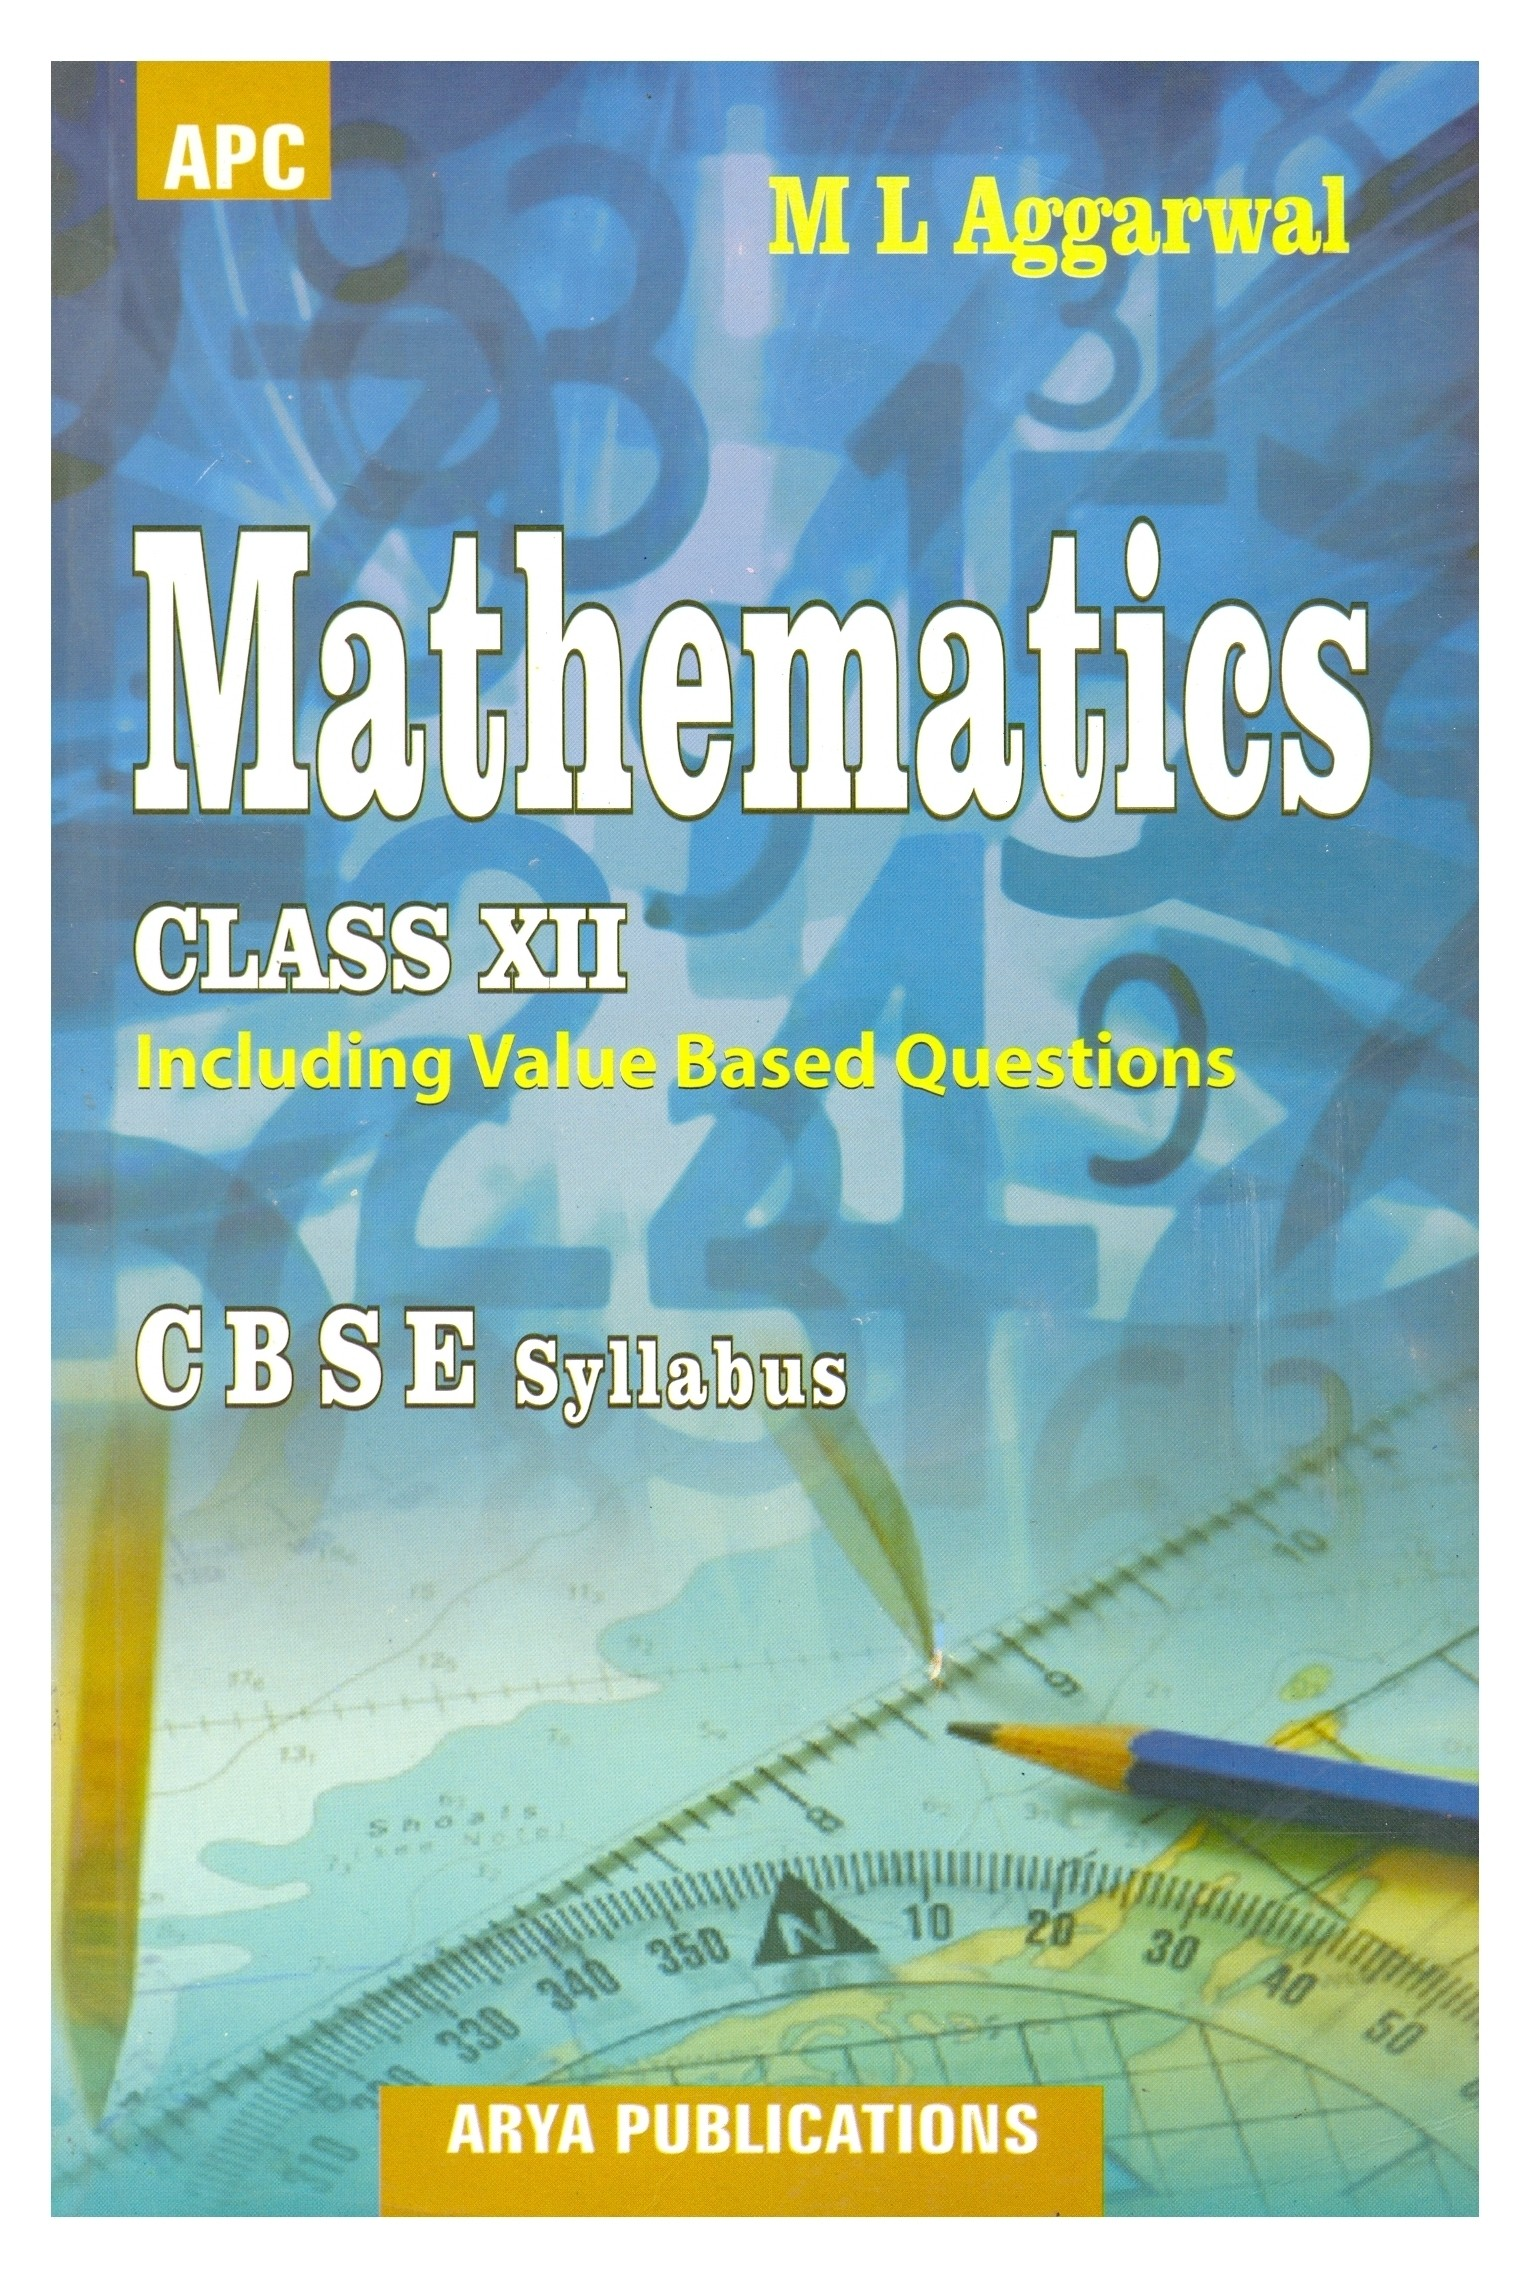 value based questions for mathematics class The cbse board has introduced value-based questions in cbse 12th question  papers  mathematics for class xii (part -i) 1st edition (paperback) by ncert.